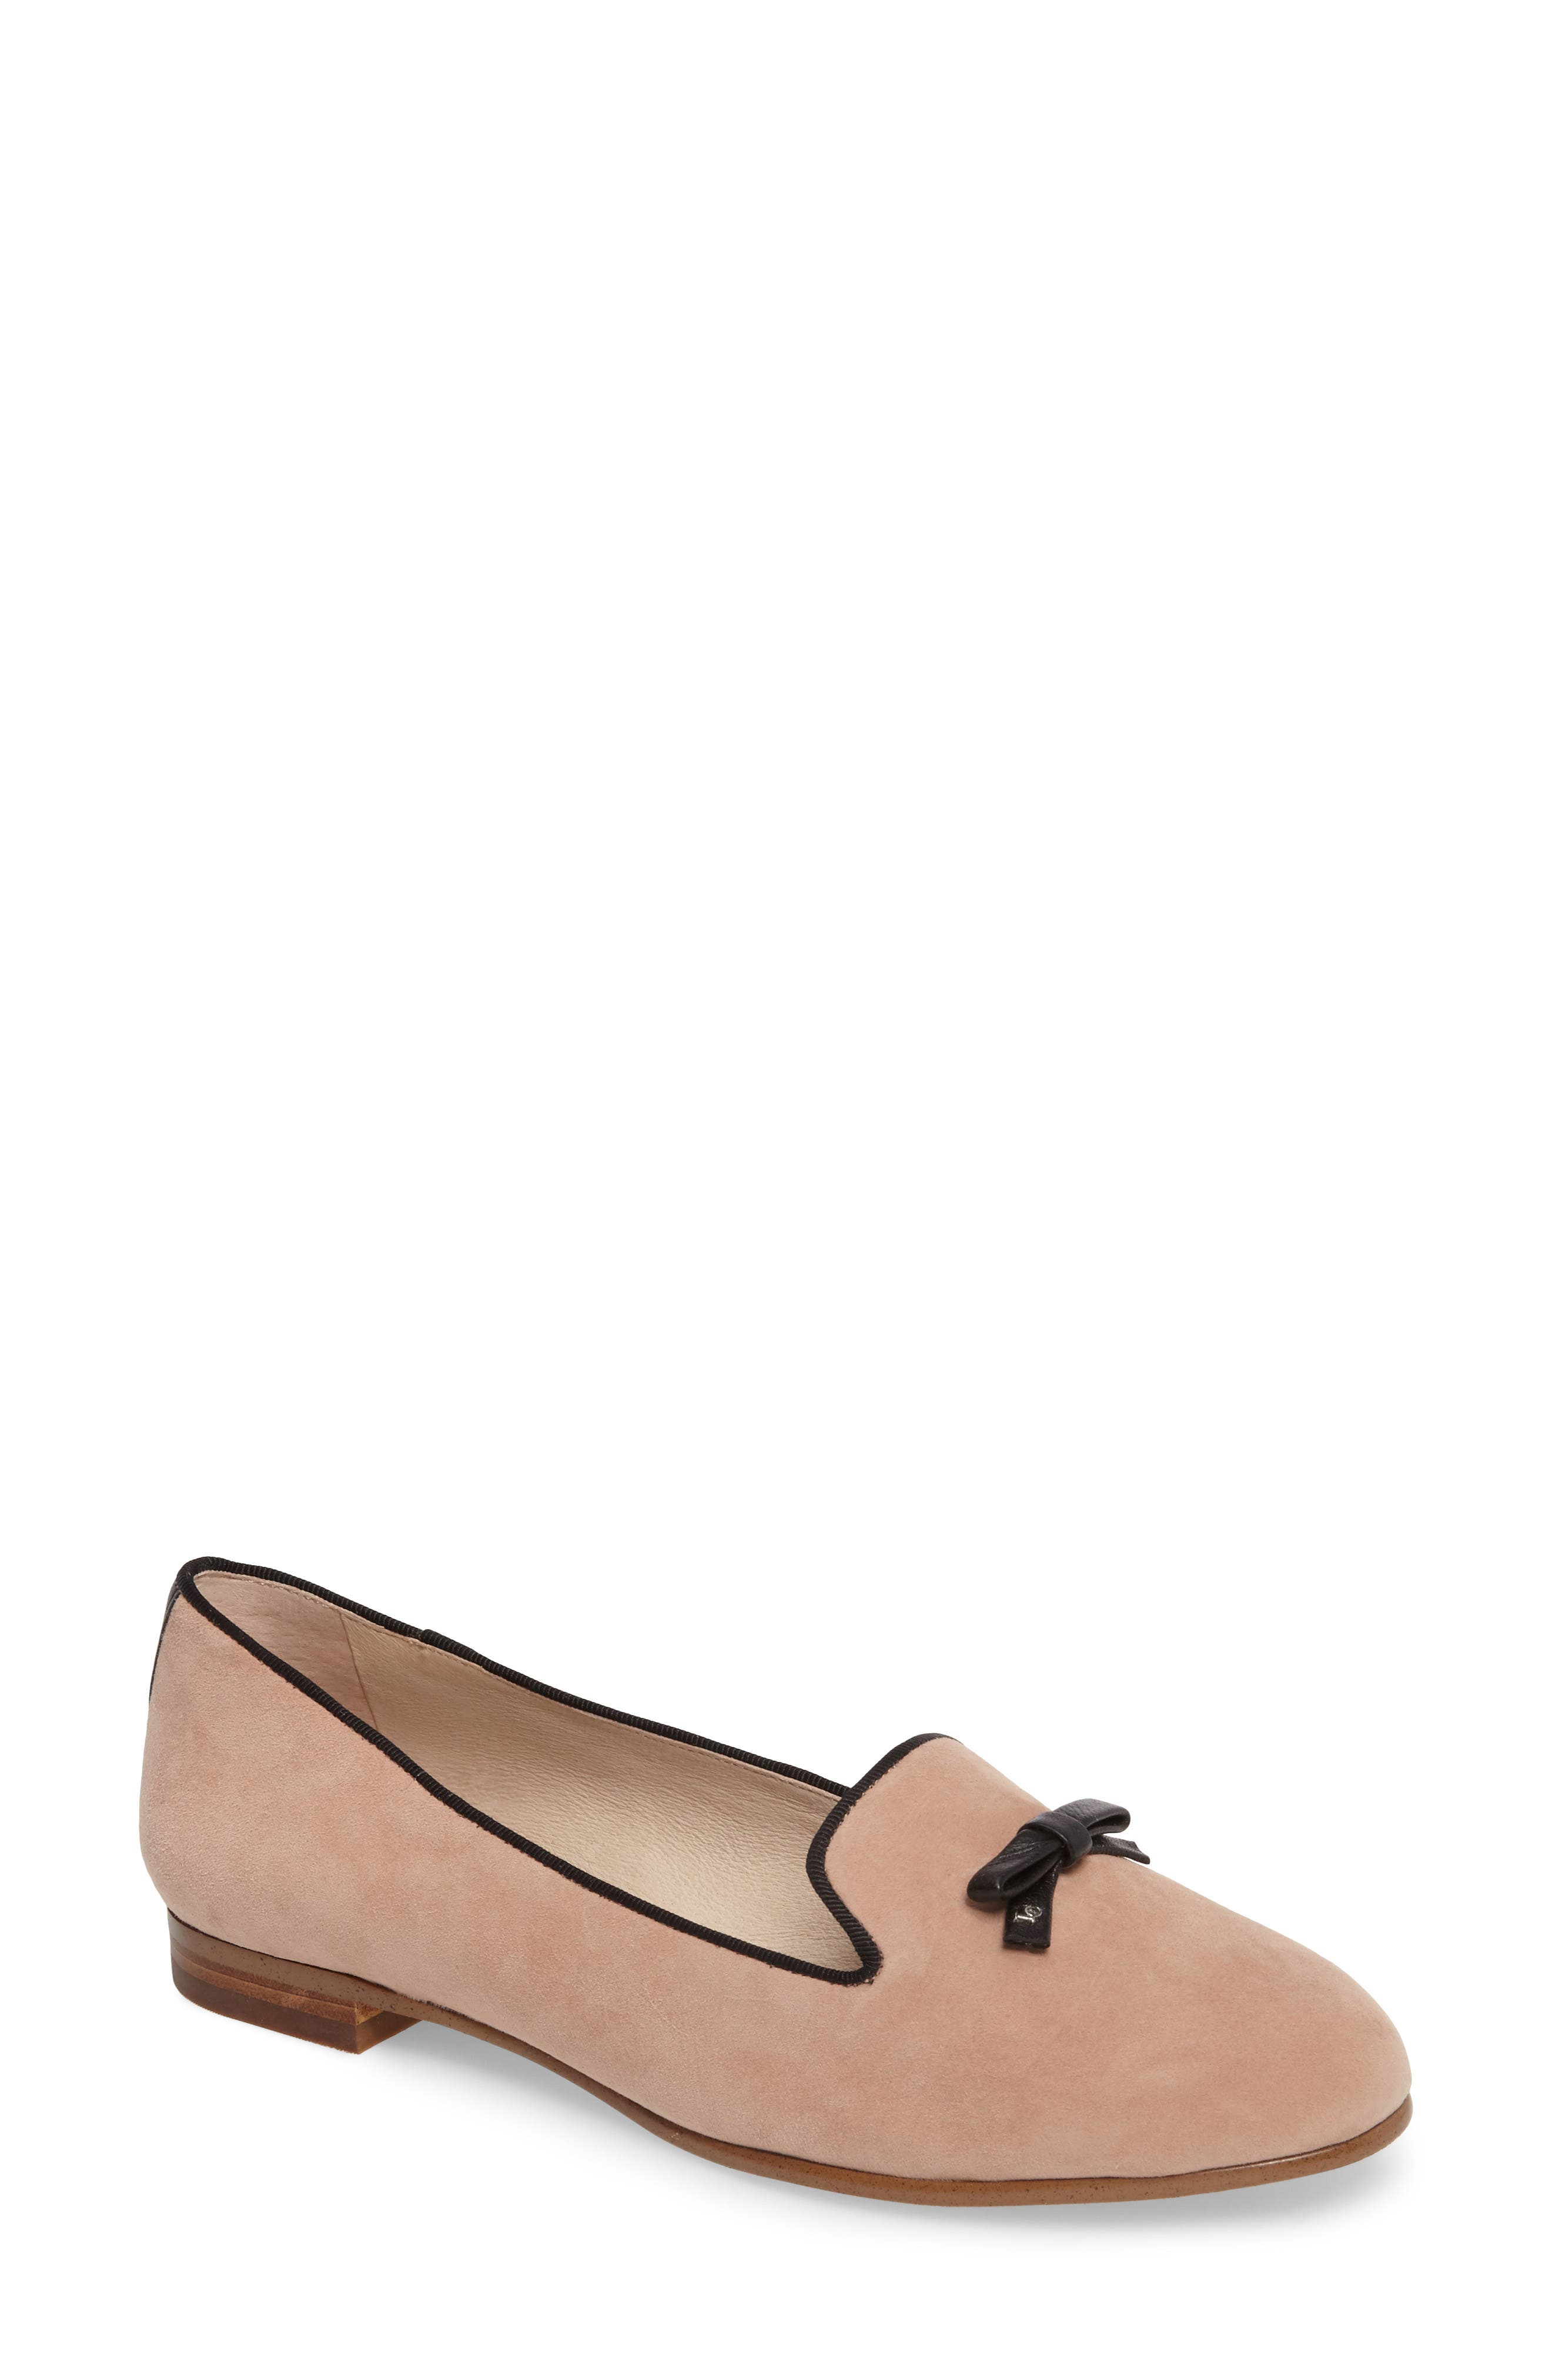 Louise et Cie Anniston Flat (Women)